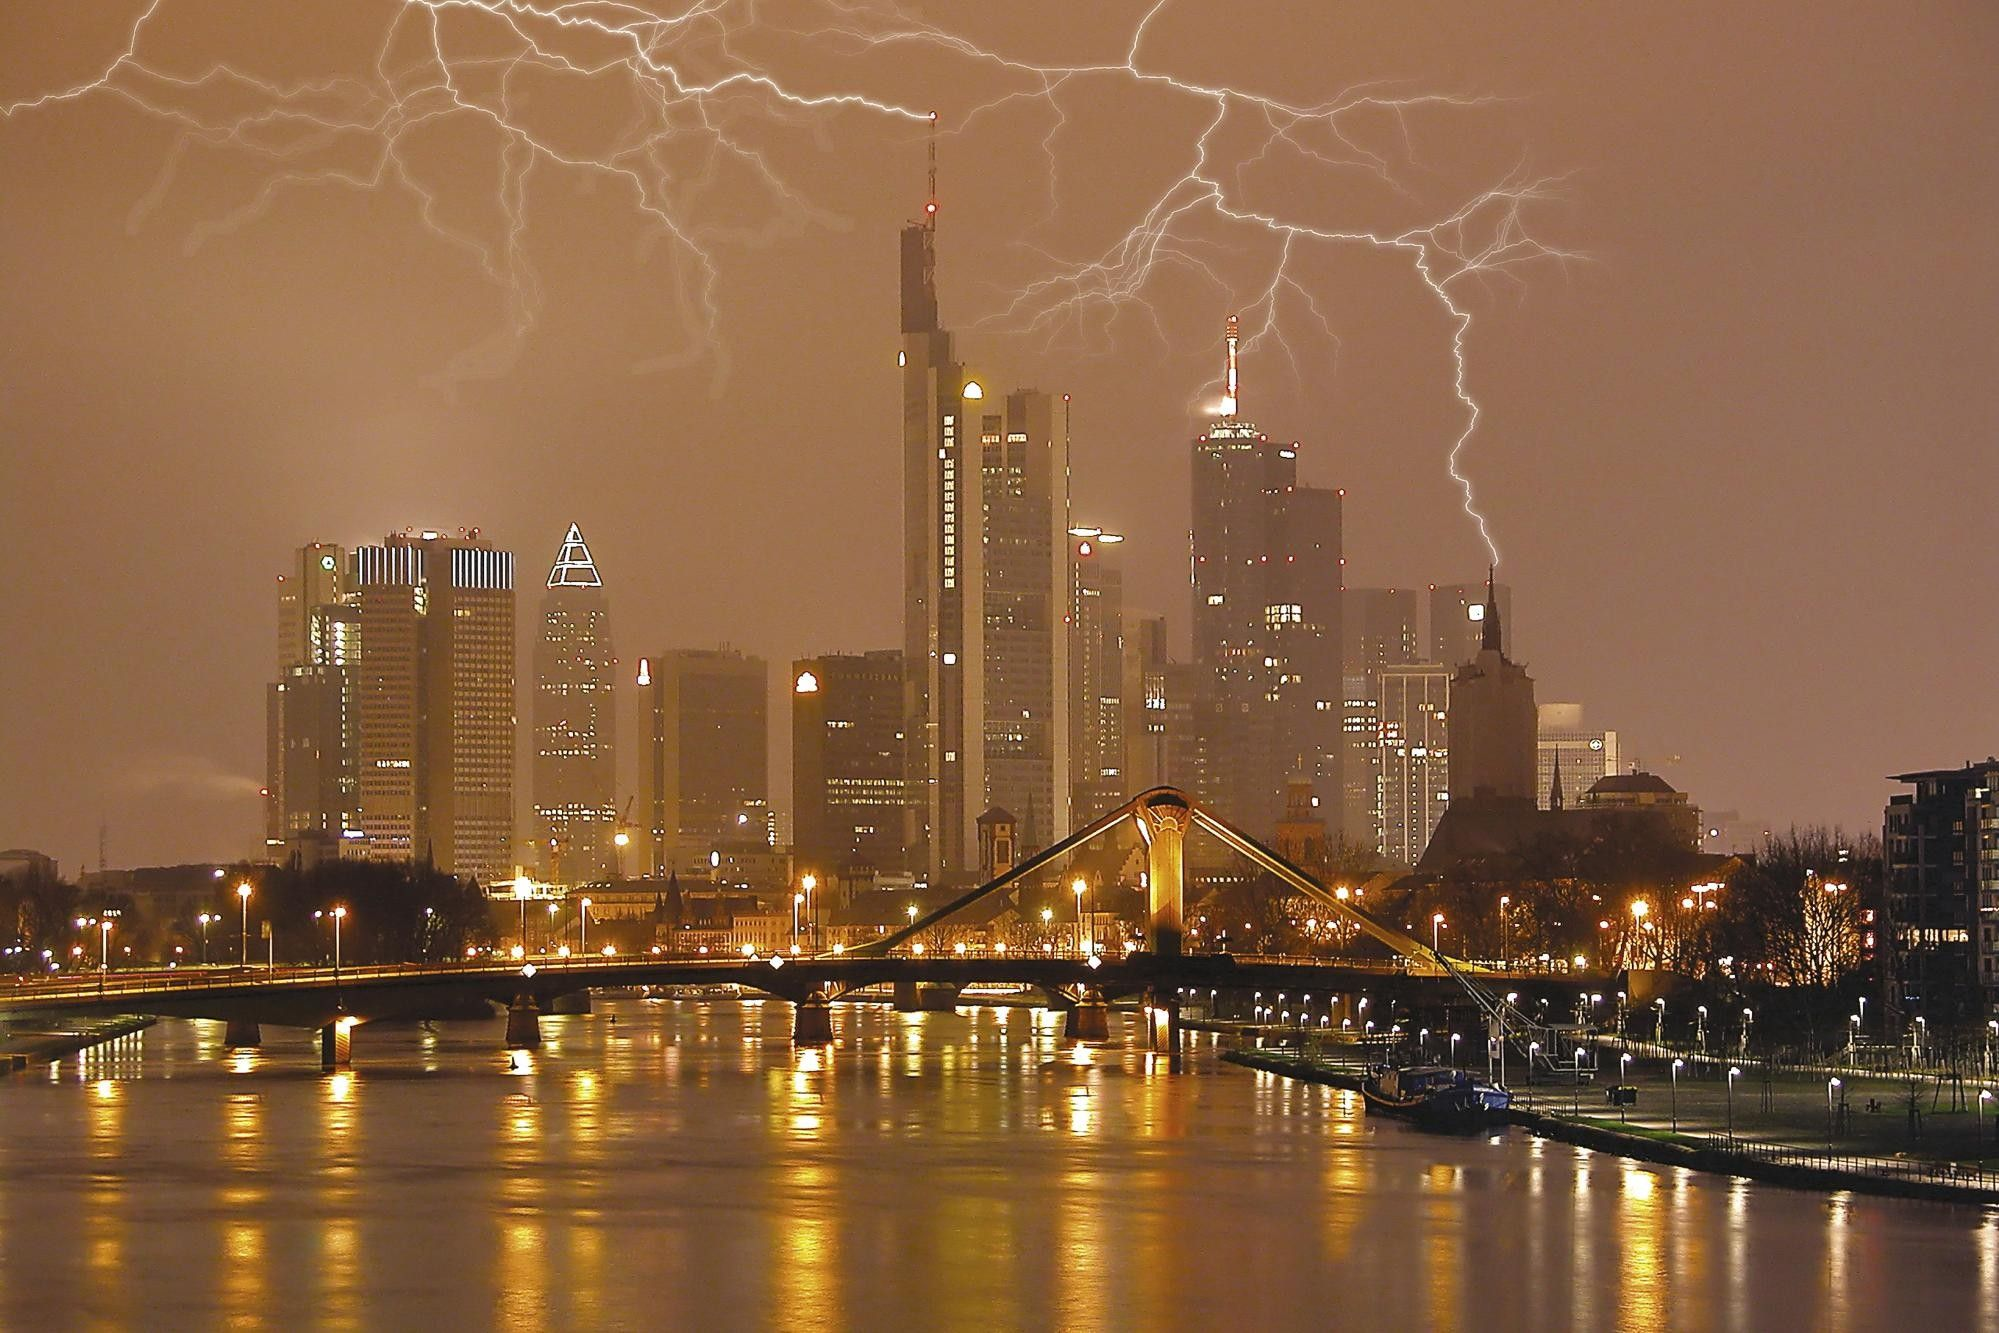 lightning, City, clouds, wallpapers , Pc backgrounds, free photos - HD wallpaper desktop backgrounds